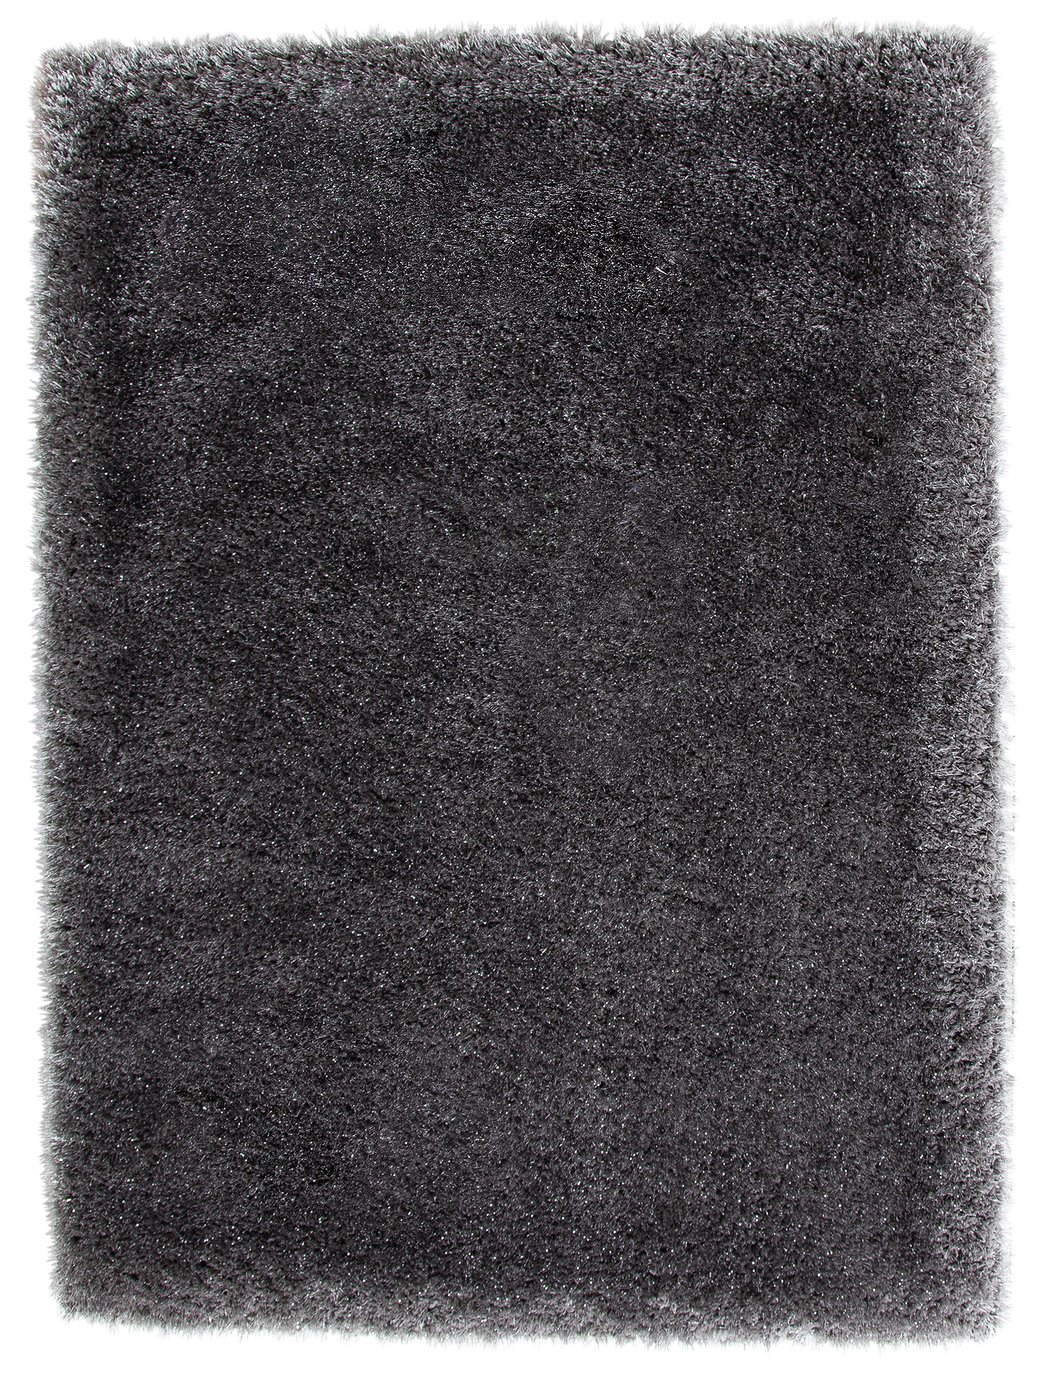 Argos Home Lurex Shaggy Rug - 160x230cm - Grey